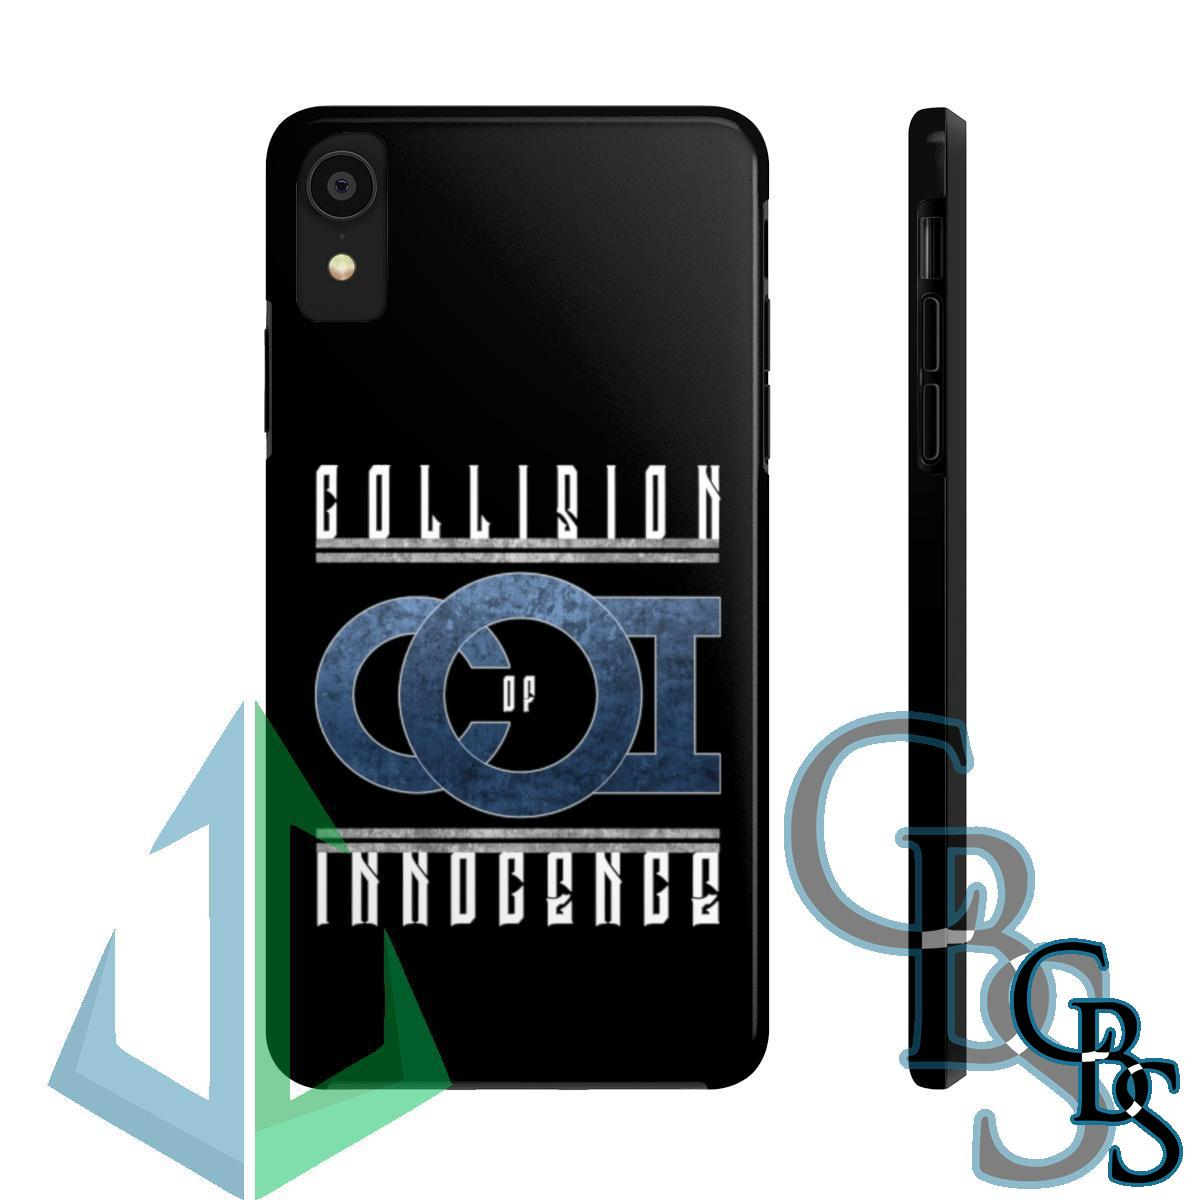 Collision of Innocence COI Tough iPhone Cases